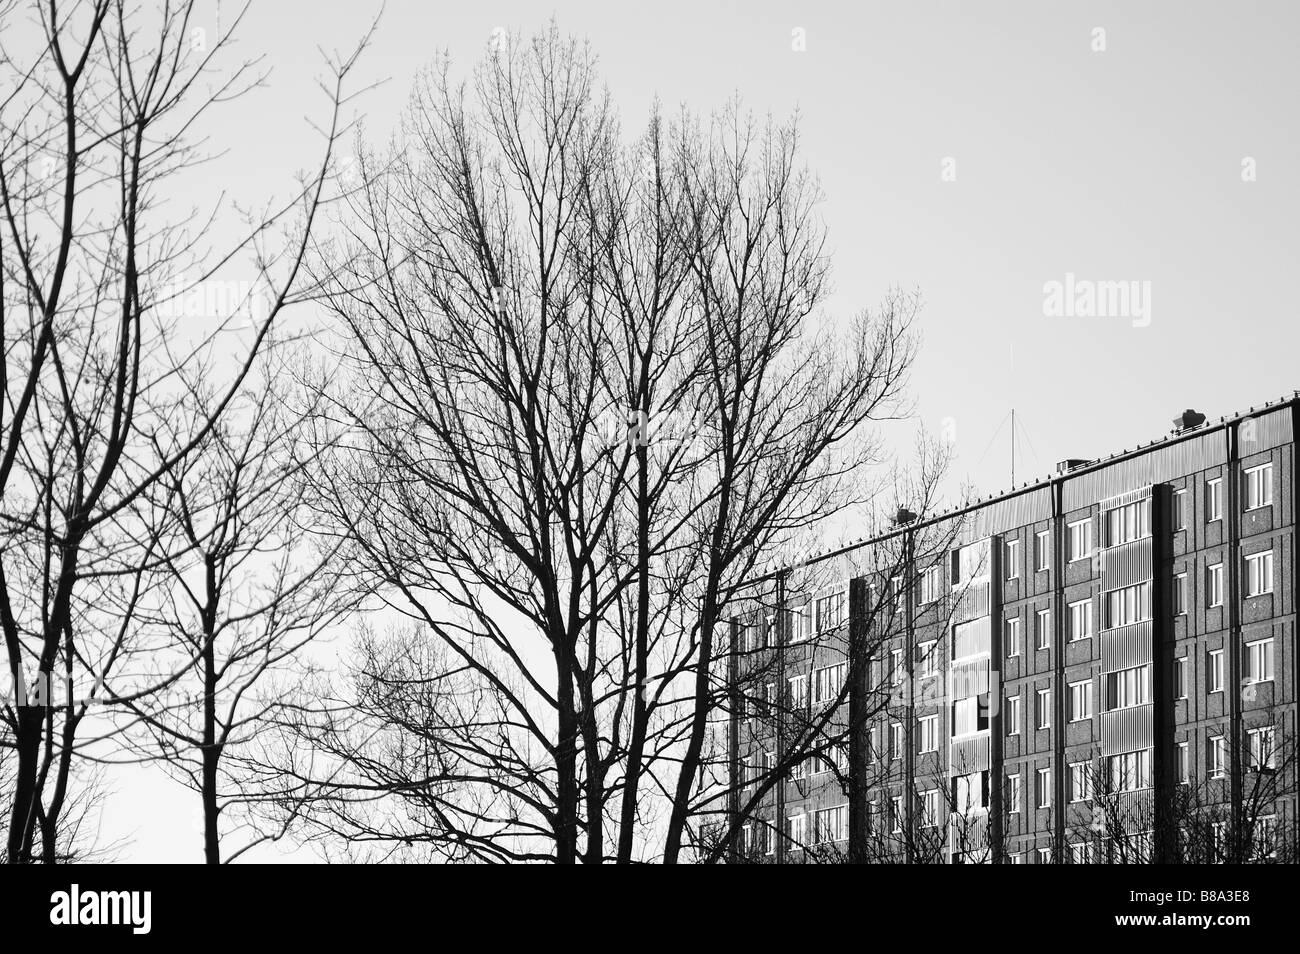 Building and trees without leaves,Gothenburg,Sweden - Stock Image